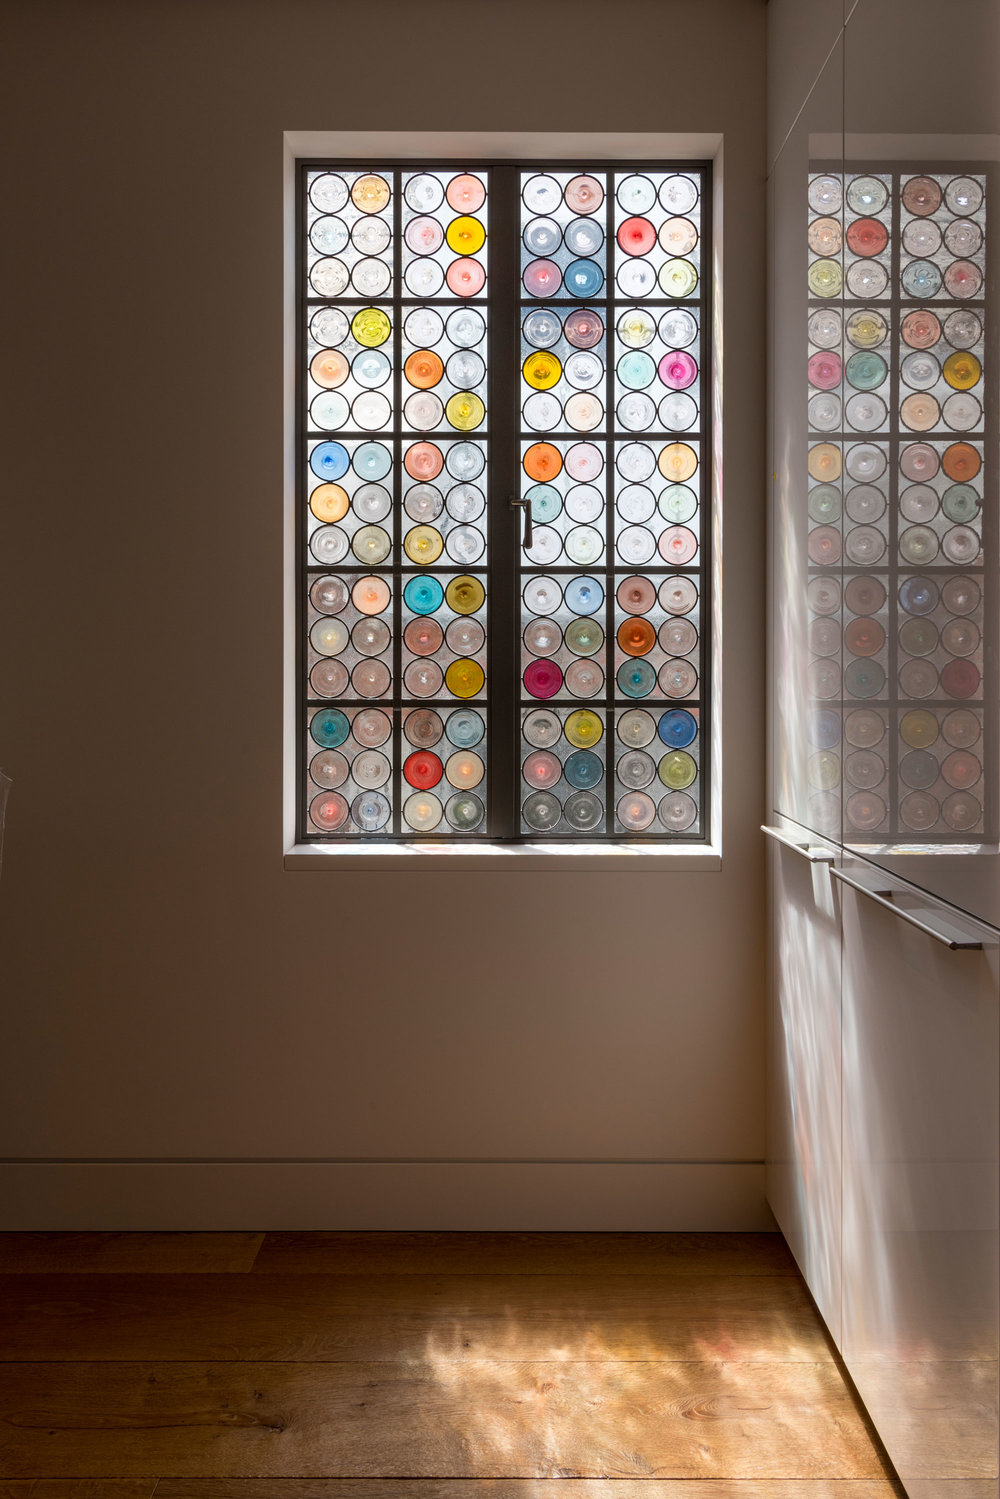 Rondels were the earliest forms to be made and used in the first leaded glass windows 800 years ago. We collaborated with an architecture firm to create a series of 375 light filtering panels that would allow light to enter the space while providing privacy.